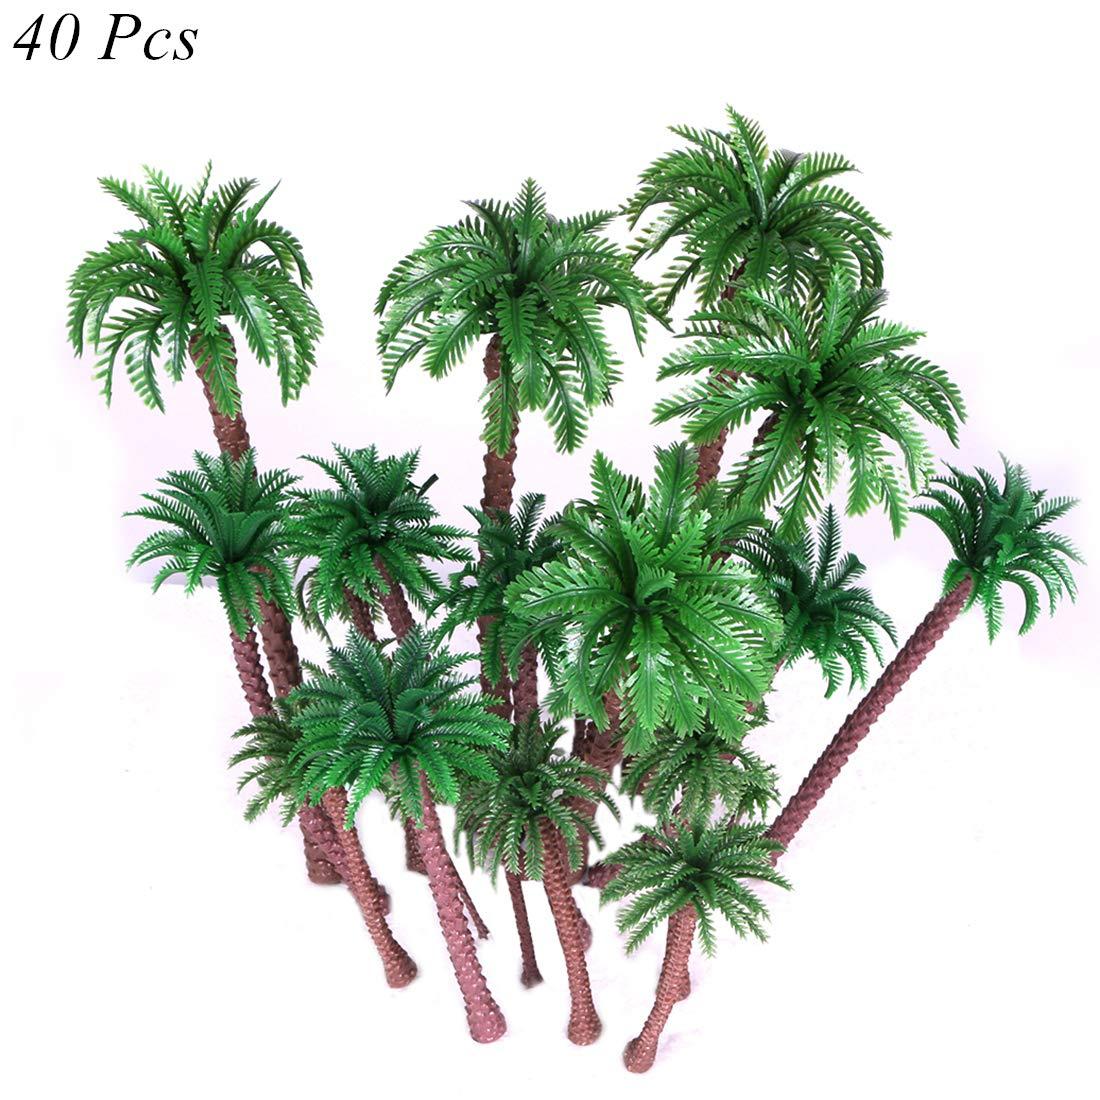 Ymeibe 40 PCS Coconut Palm Model Trees Diorama Plastic Trees Artificial Layout Rainforest Miniature Trees Train Railways Architecture Building Model Trees Cake Topper Decoration